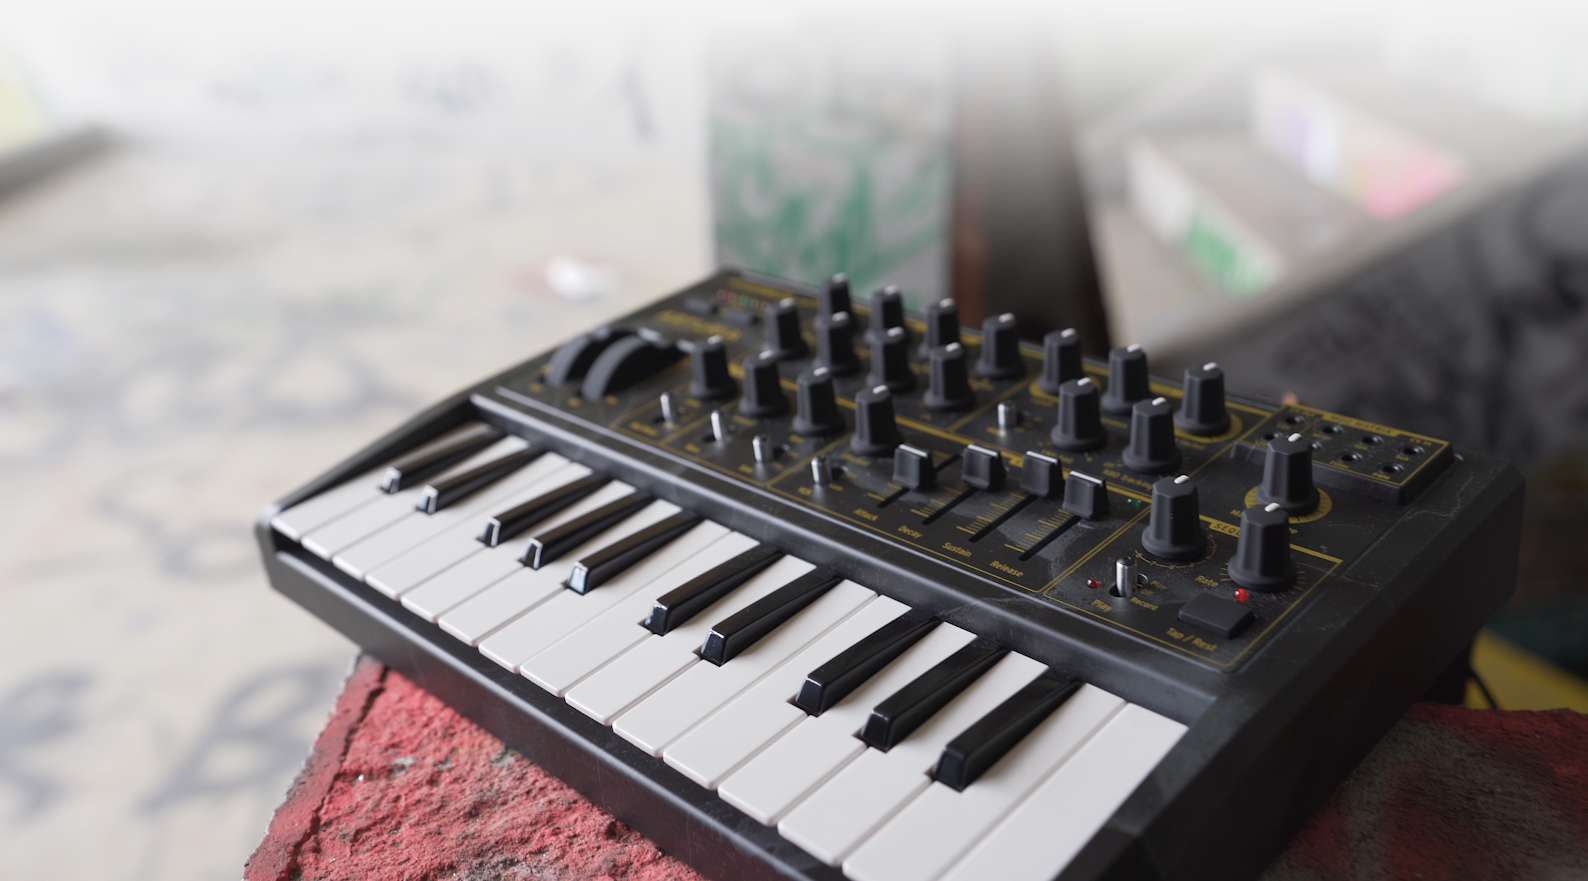 Arturia アートリア MicroBrute Creation アナログシンセサイザー 限定モデル